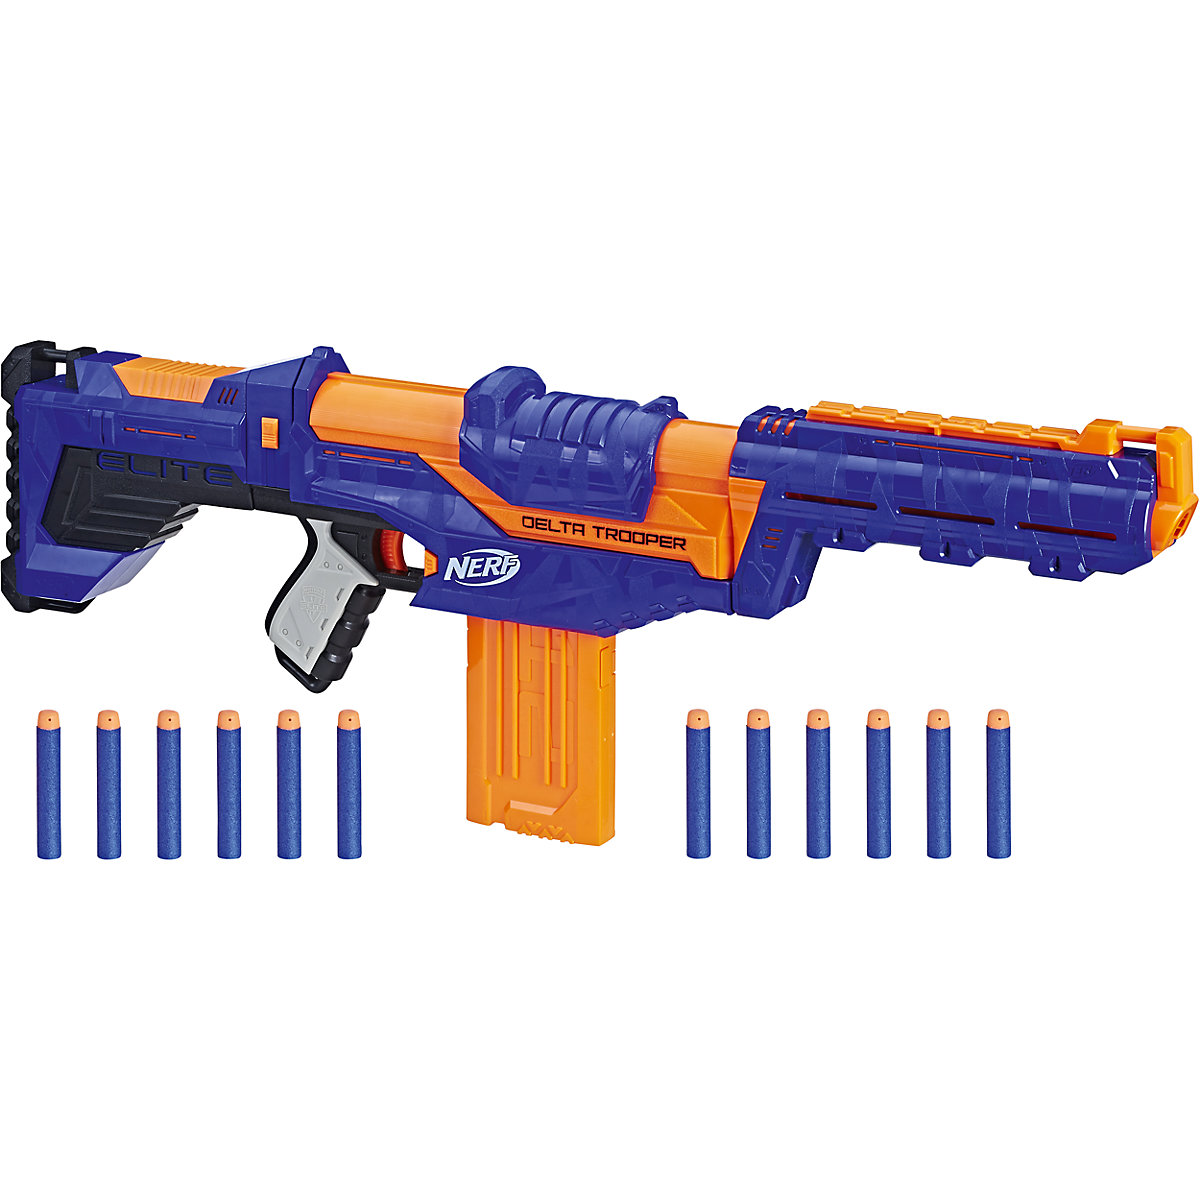 Toy Guns NERF 8376467 Children Kids Toy Gun Weapon Blasters Boys Shooting games Outdoor play tactical x300 pistol gun light 500 lumens high output weapon flashlight fit 20mm picatinny weaver rail